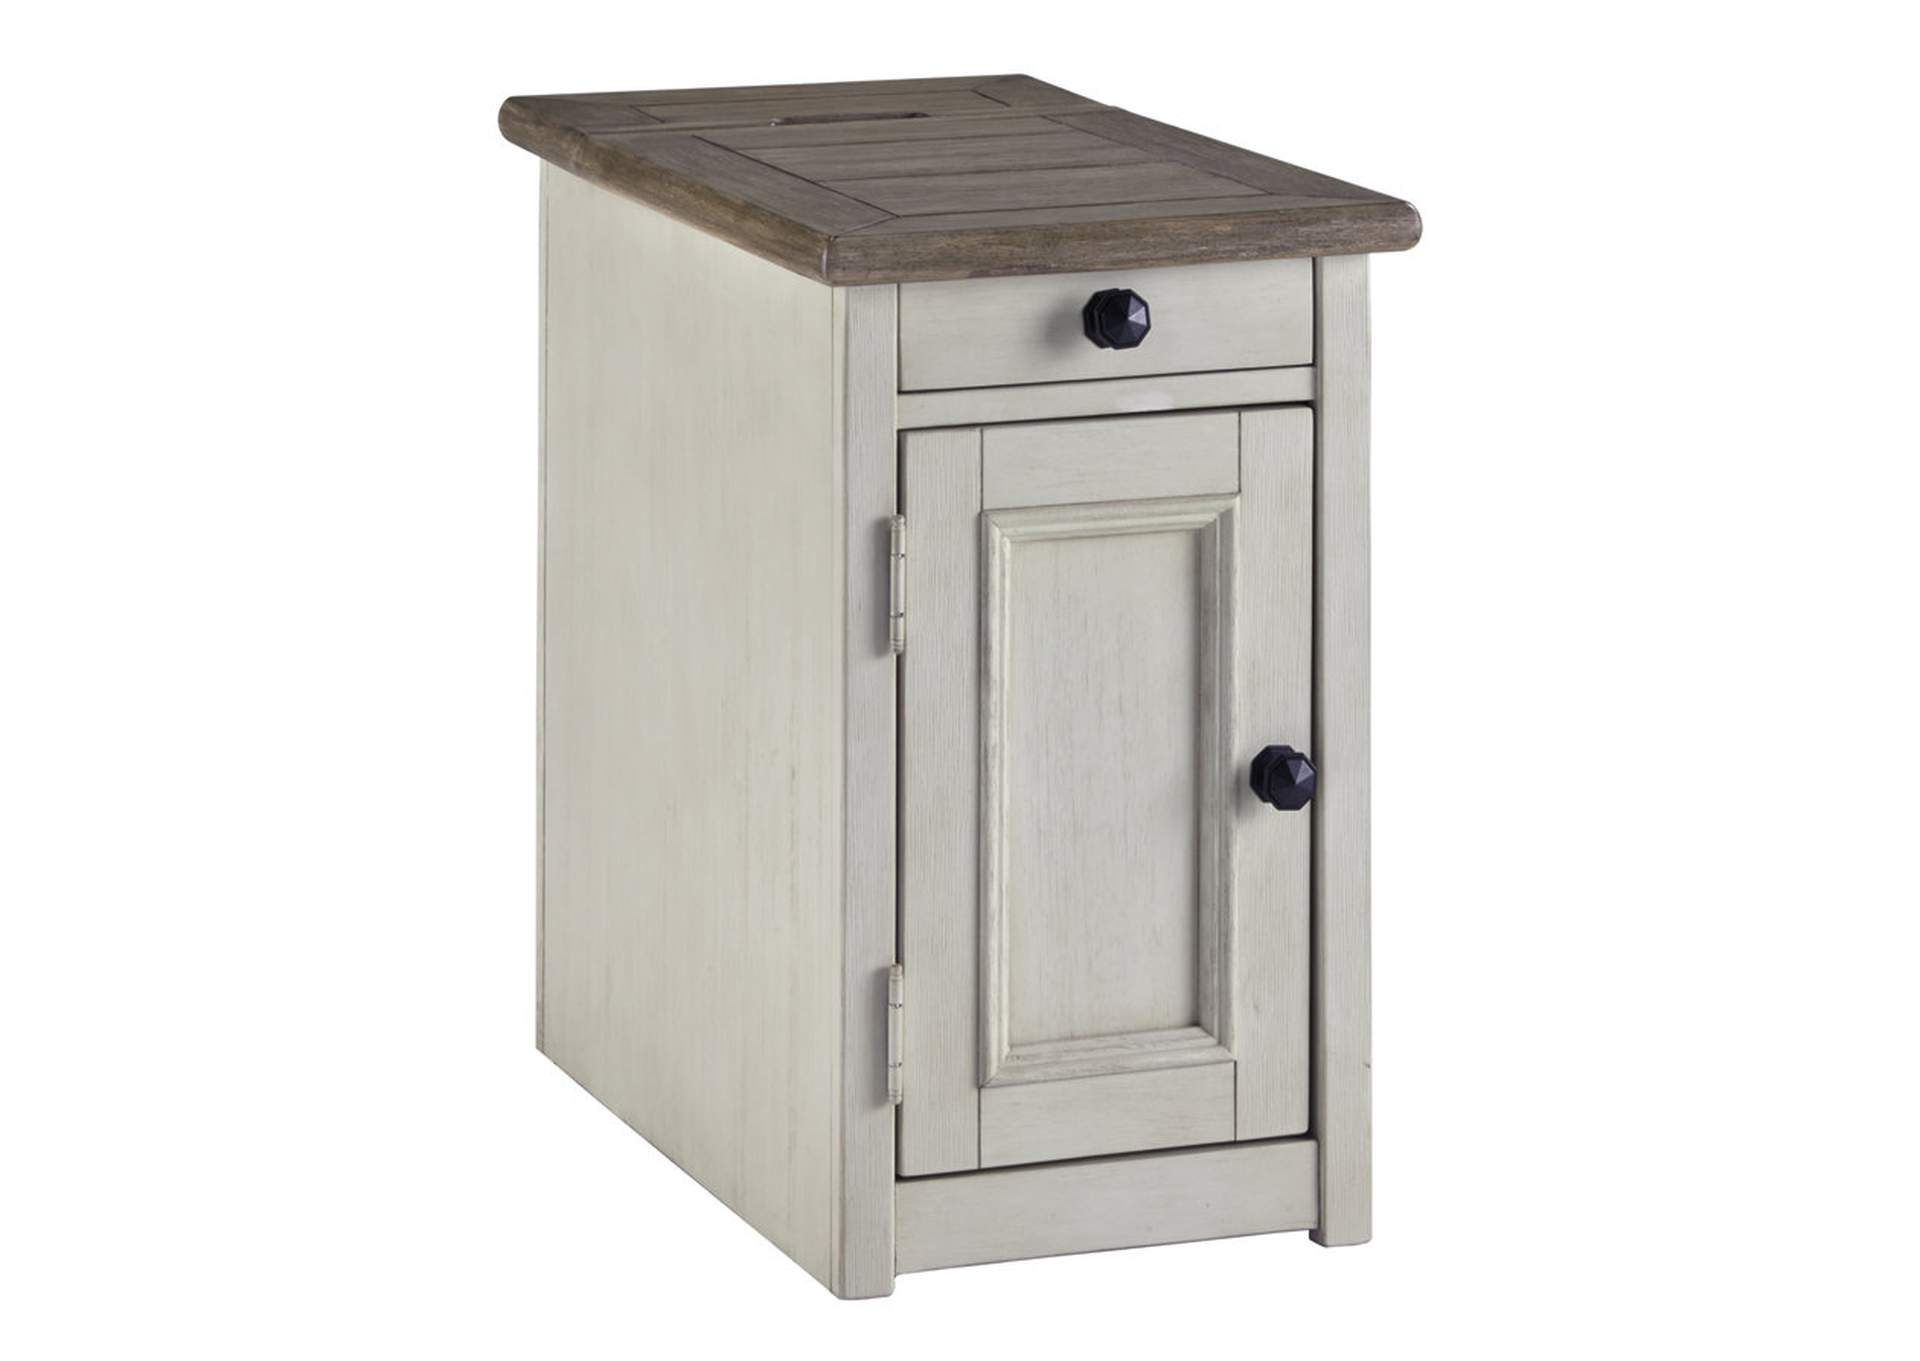 Bolanburg Chairside End Table with USB Ports and Outlets